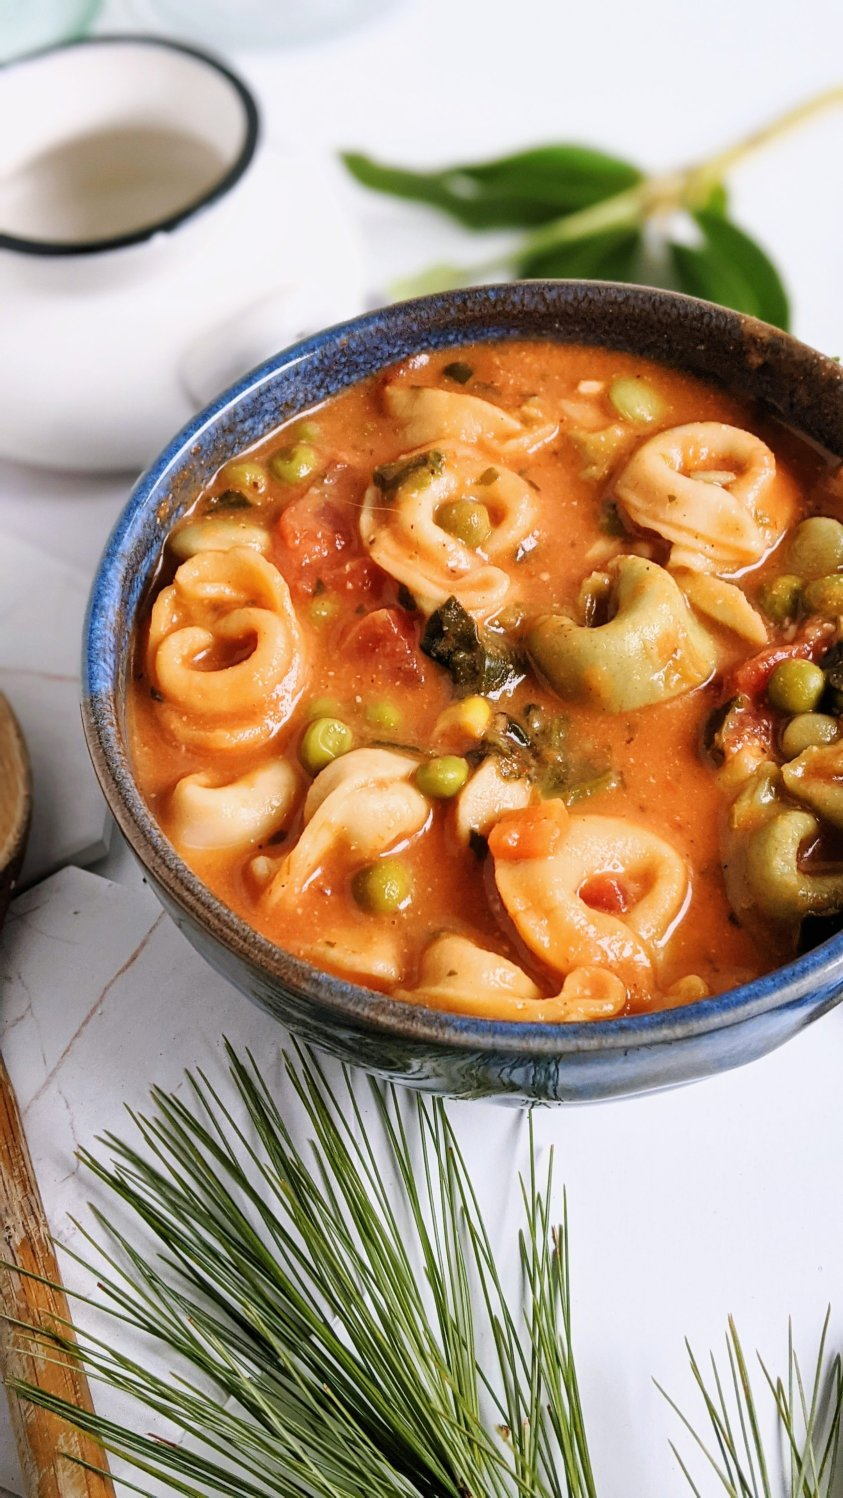 beautiful soup recipes healthy homemade soups for pot luck parties entertaining date night vegetarian vegan italian meals one pot easy clean up quick fast 30 minute meals recipes soups